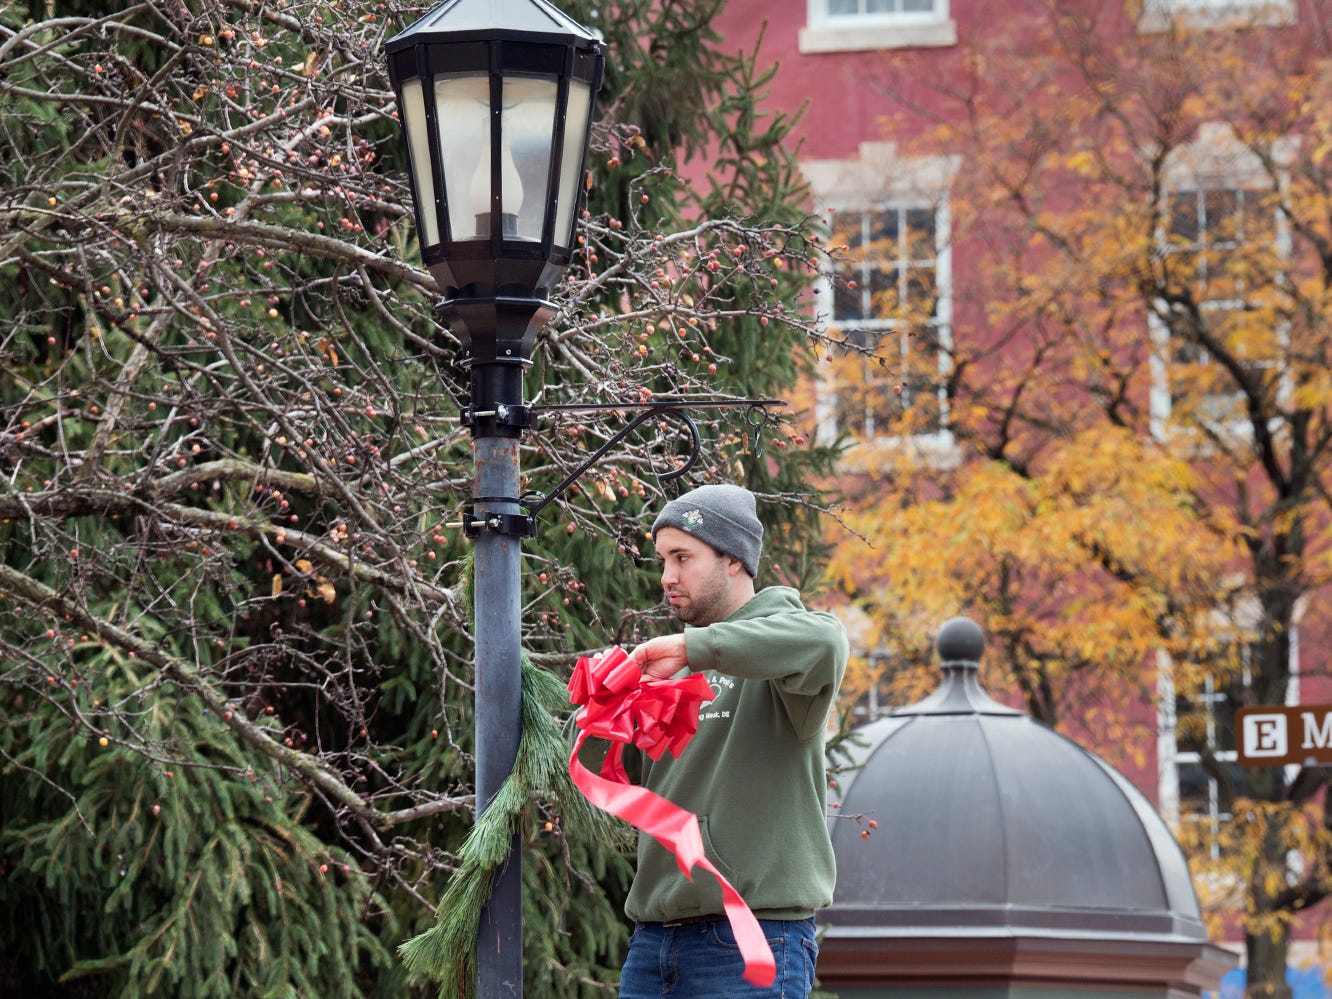 From the left, Julie Kaizar, Tom Kaizar and Kevin Wilcox, volunteers from RKL, decorate a light post on Continental Square during the Hanging of the Greens around Continental Square in York on Sunday. The decorations help put people in the holiday spirit, and also prepare for Light Up York on Dec. 1.